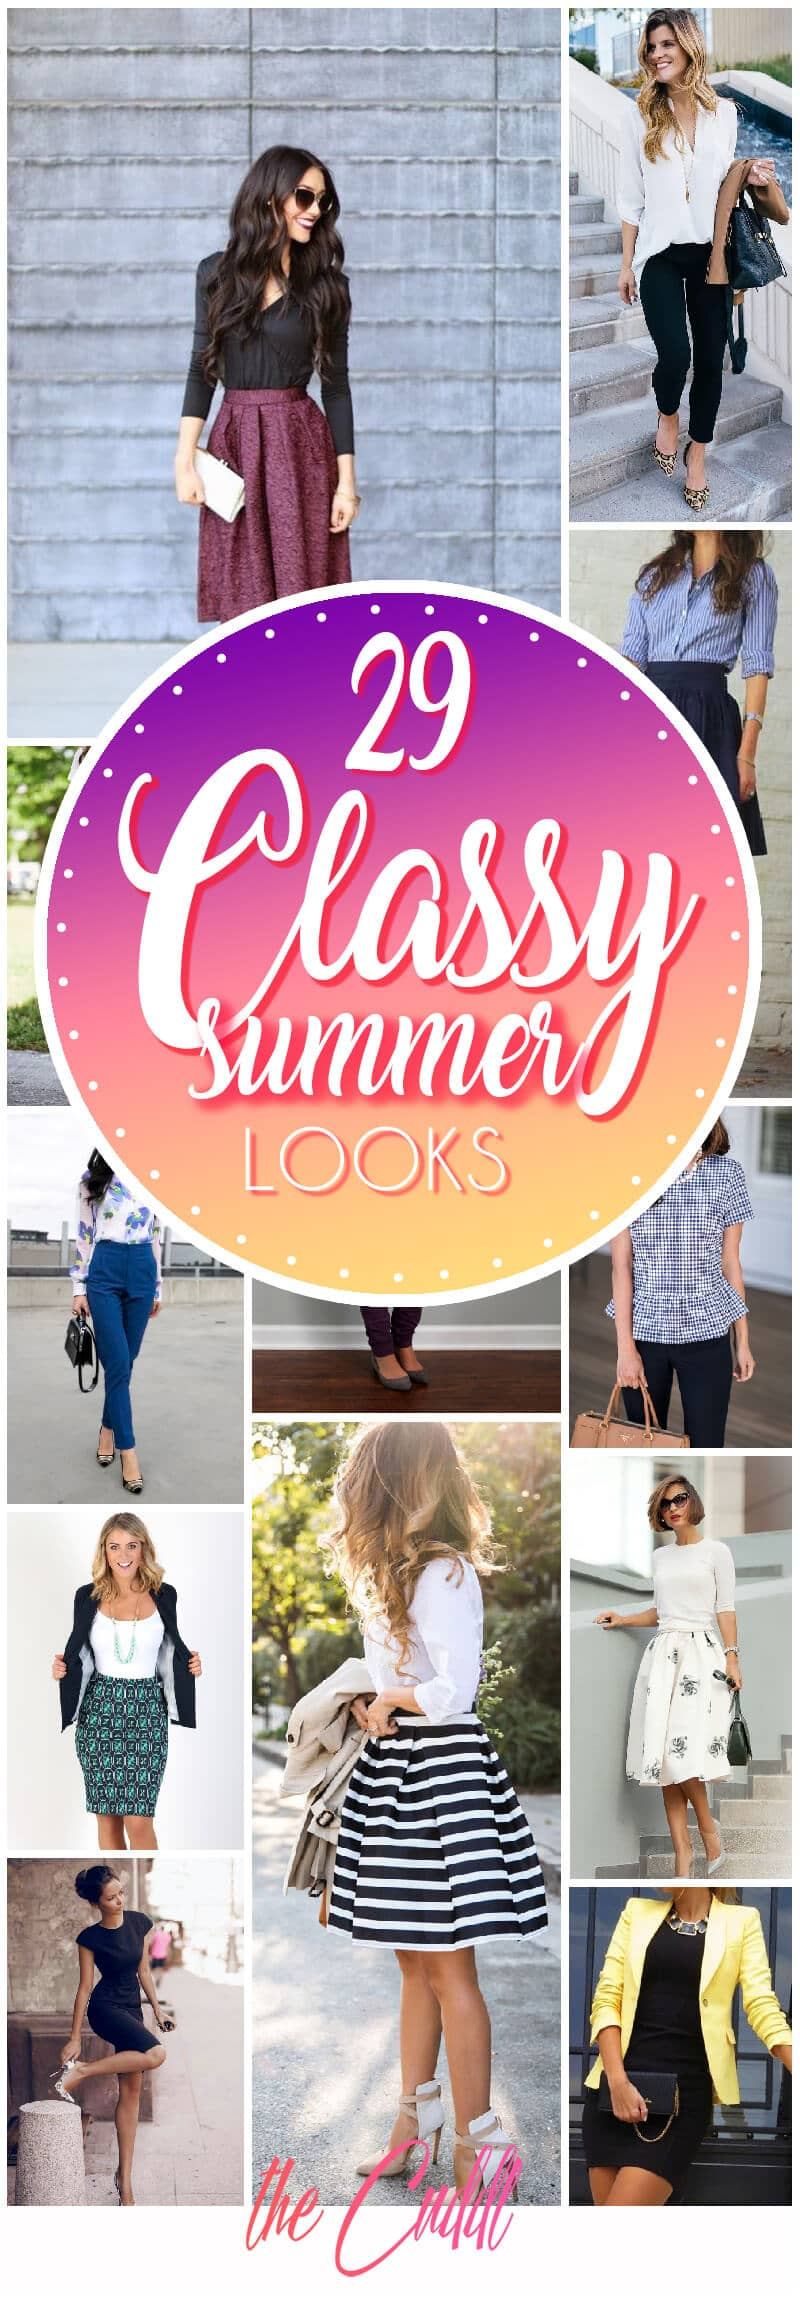 29 Classy And Elegant Summer Outfits